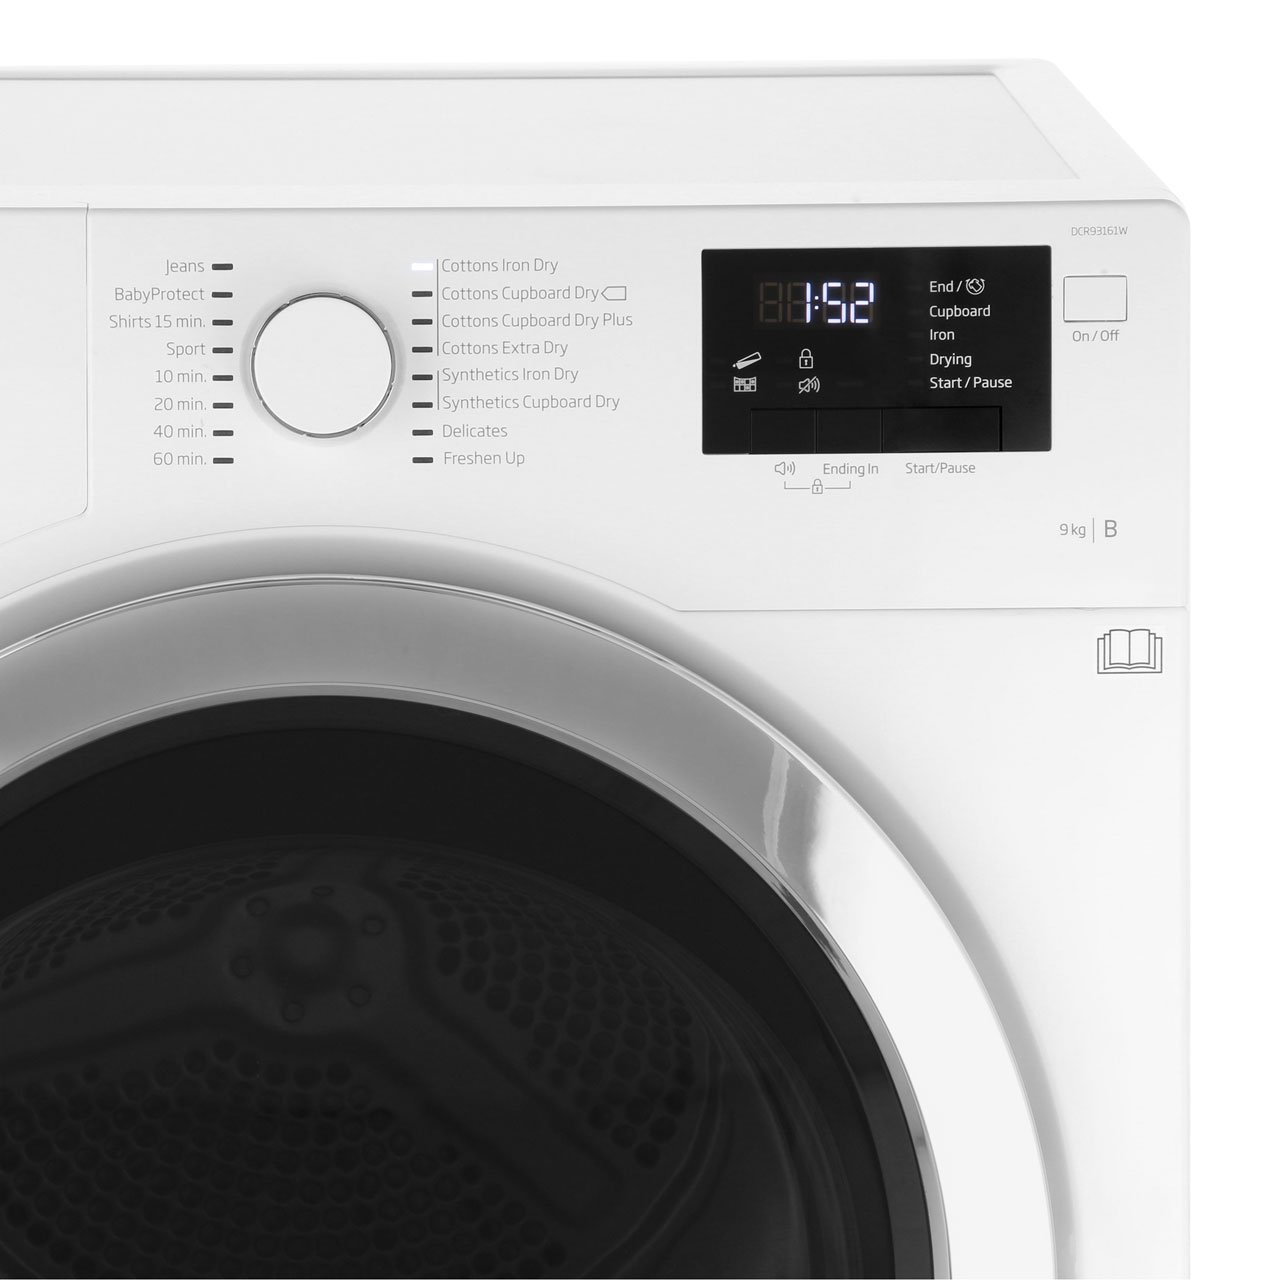 Tumble Dryers Rental Goods